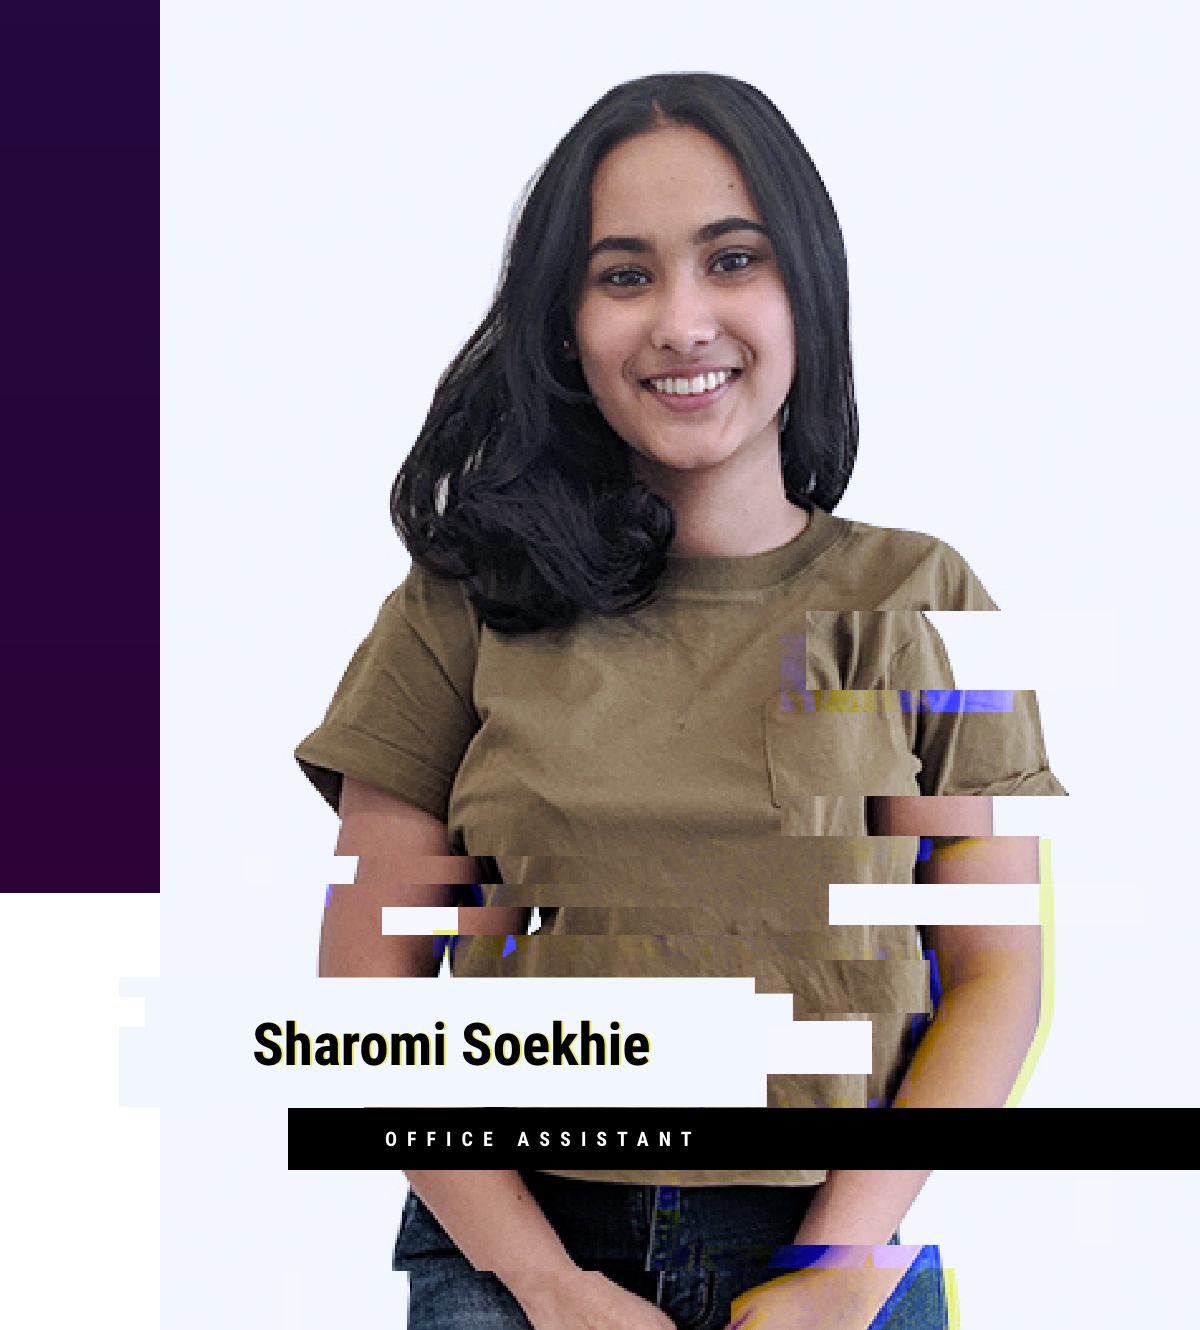 New to the Team: Sharomi Soekhie - Office assistant